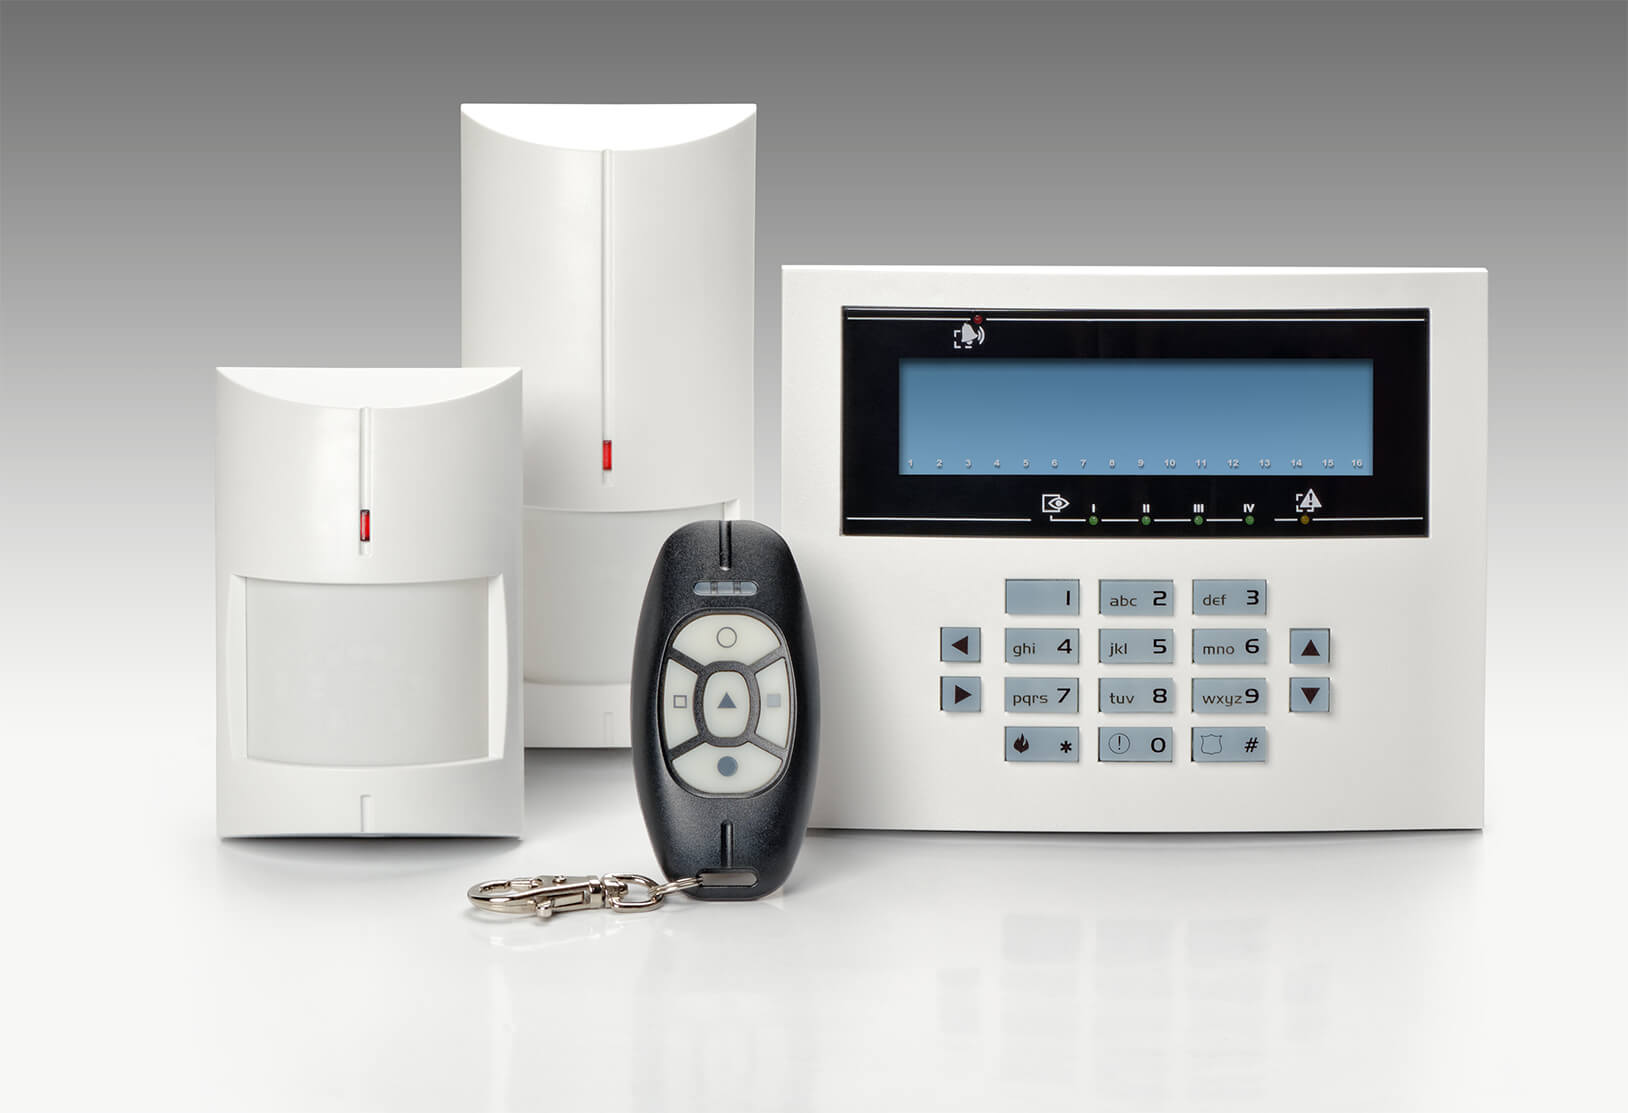 Commercial Burglar Alarms For Business in Rotherhithe SE16  - Local Rotherhithe SE16 burglar alarm company.Call 02078872244 - Dedicated to Safety & Security. Companies, shops and homes ..